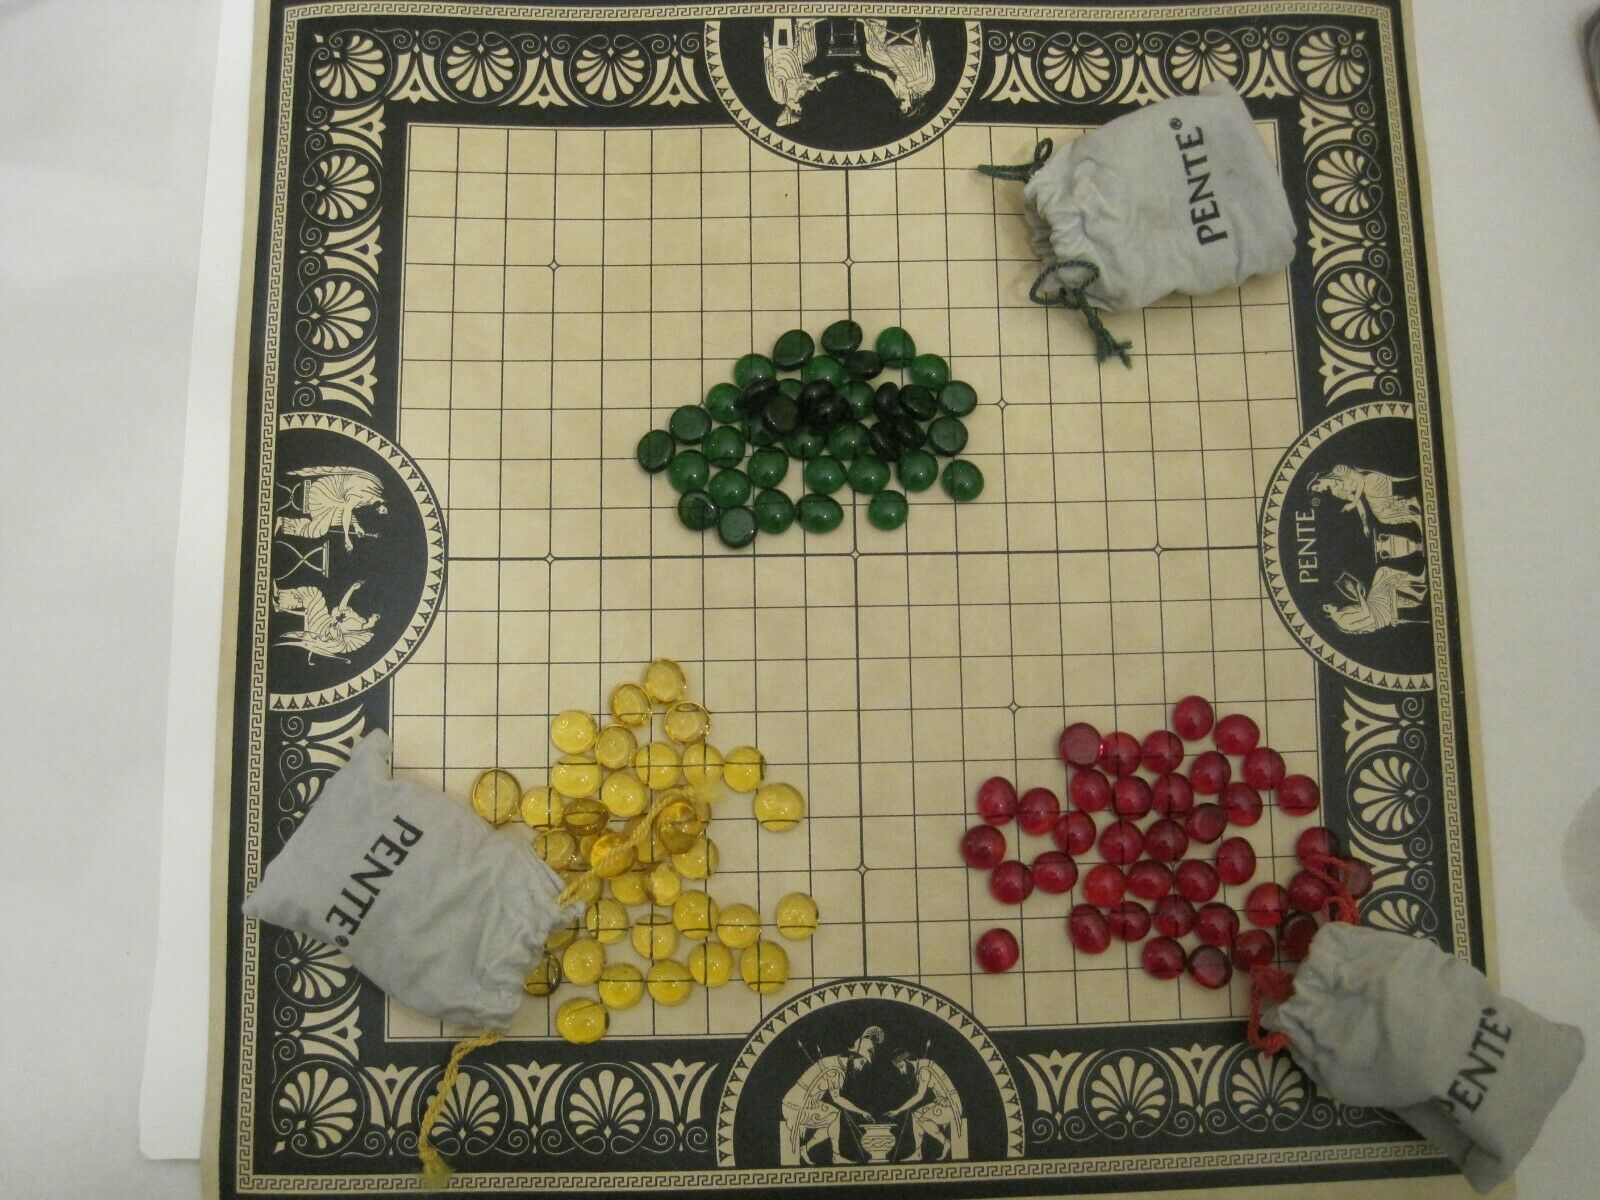 1982 Pente The Classic Game of Skill Vintage Strategy Game in rosso Tube 3 players